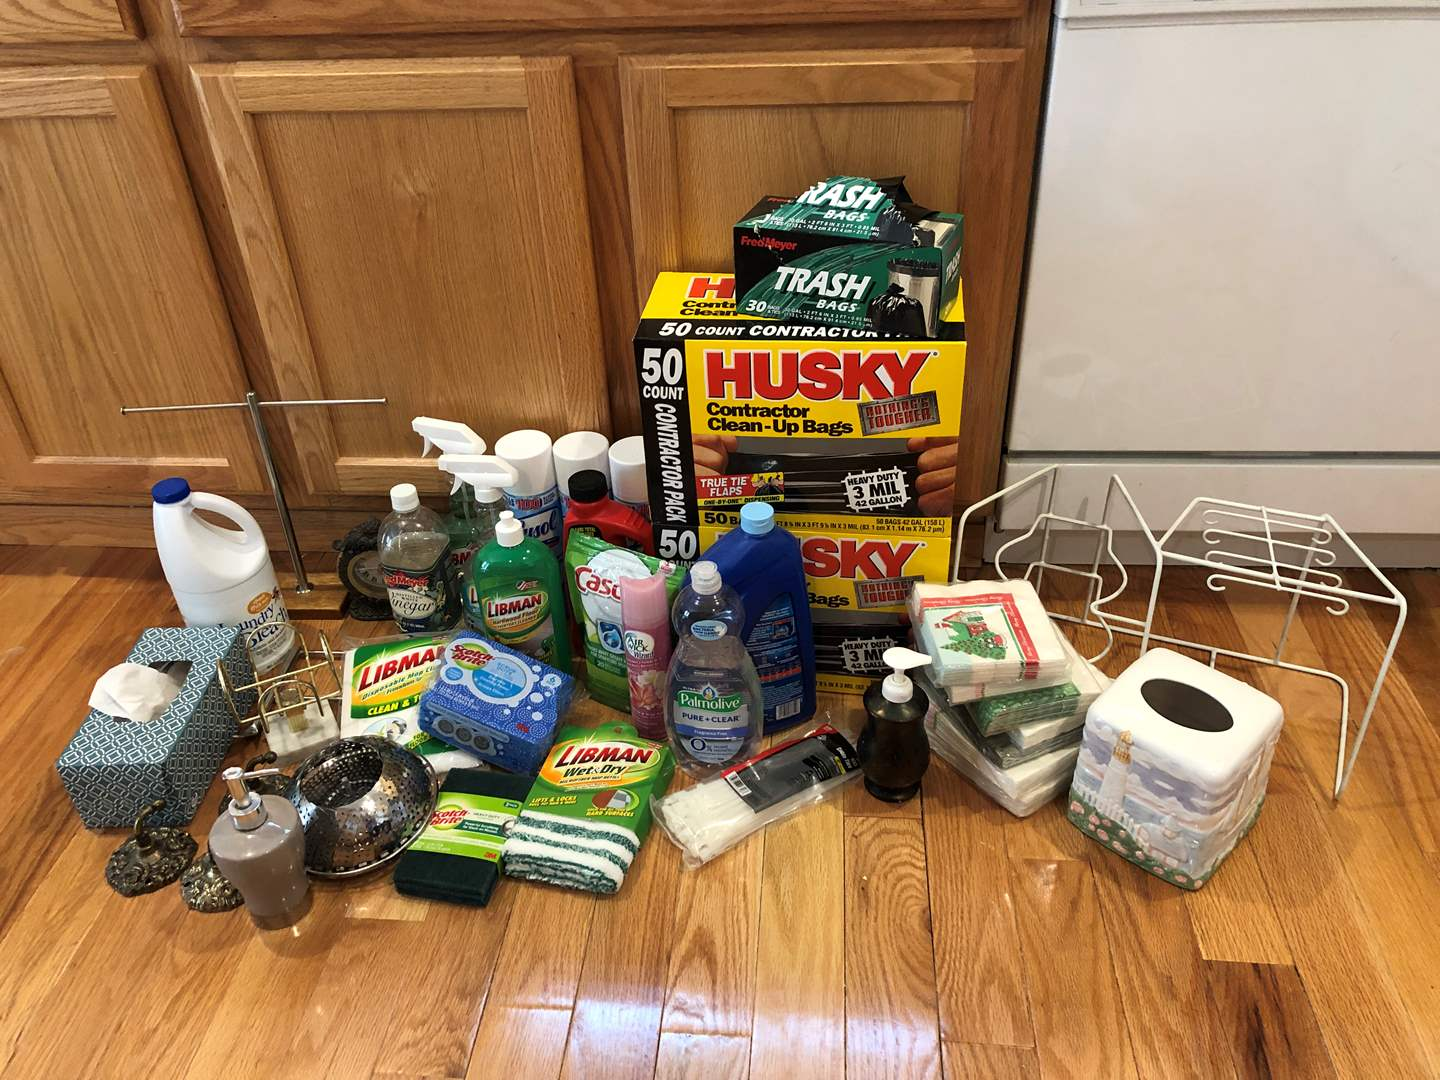 Lot # 77 - Some Used & New Cleaning Solutions, New in Box Garbage Bags, Plate & Cup Rack (main image)